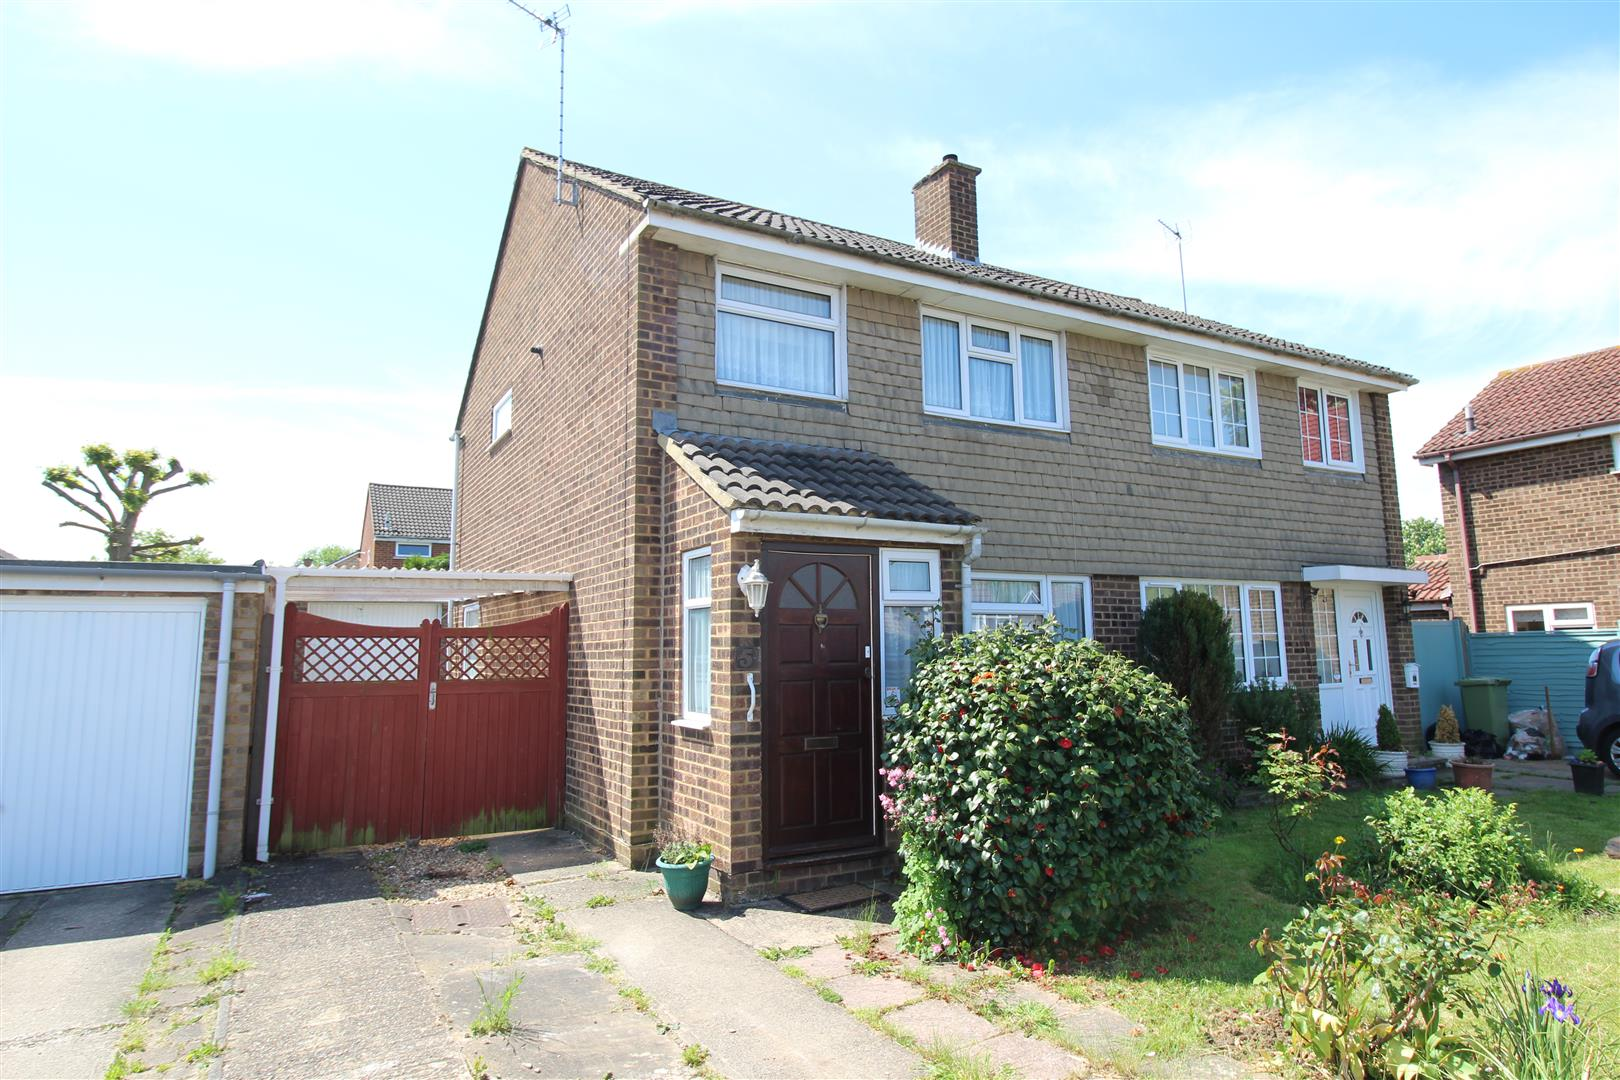 NO ONWARD CHAIN! <br/><br/>This three bedroom, semi-detached home is the ideal family home that is in need of updating. The property is in the desirable location of Bletchley with only a 15 minute walk from Bletchley train station & only a 10 minute walk